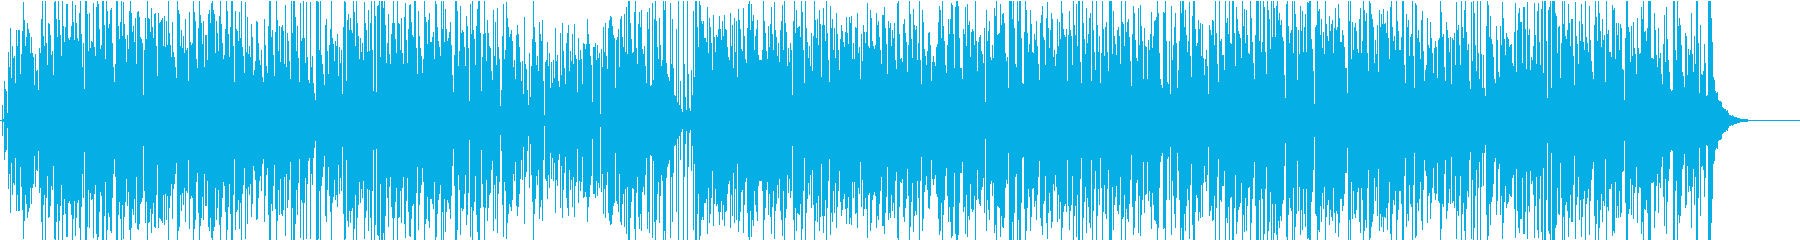 Bossa nova on the opening video with jazz piano's reproduced waveform